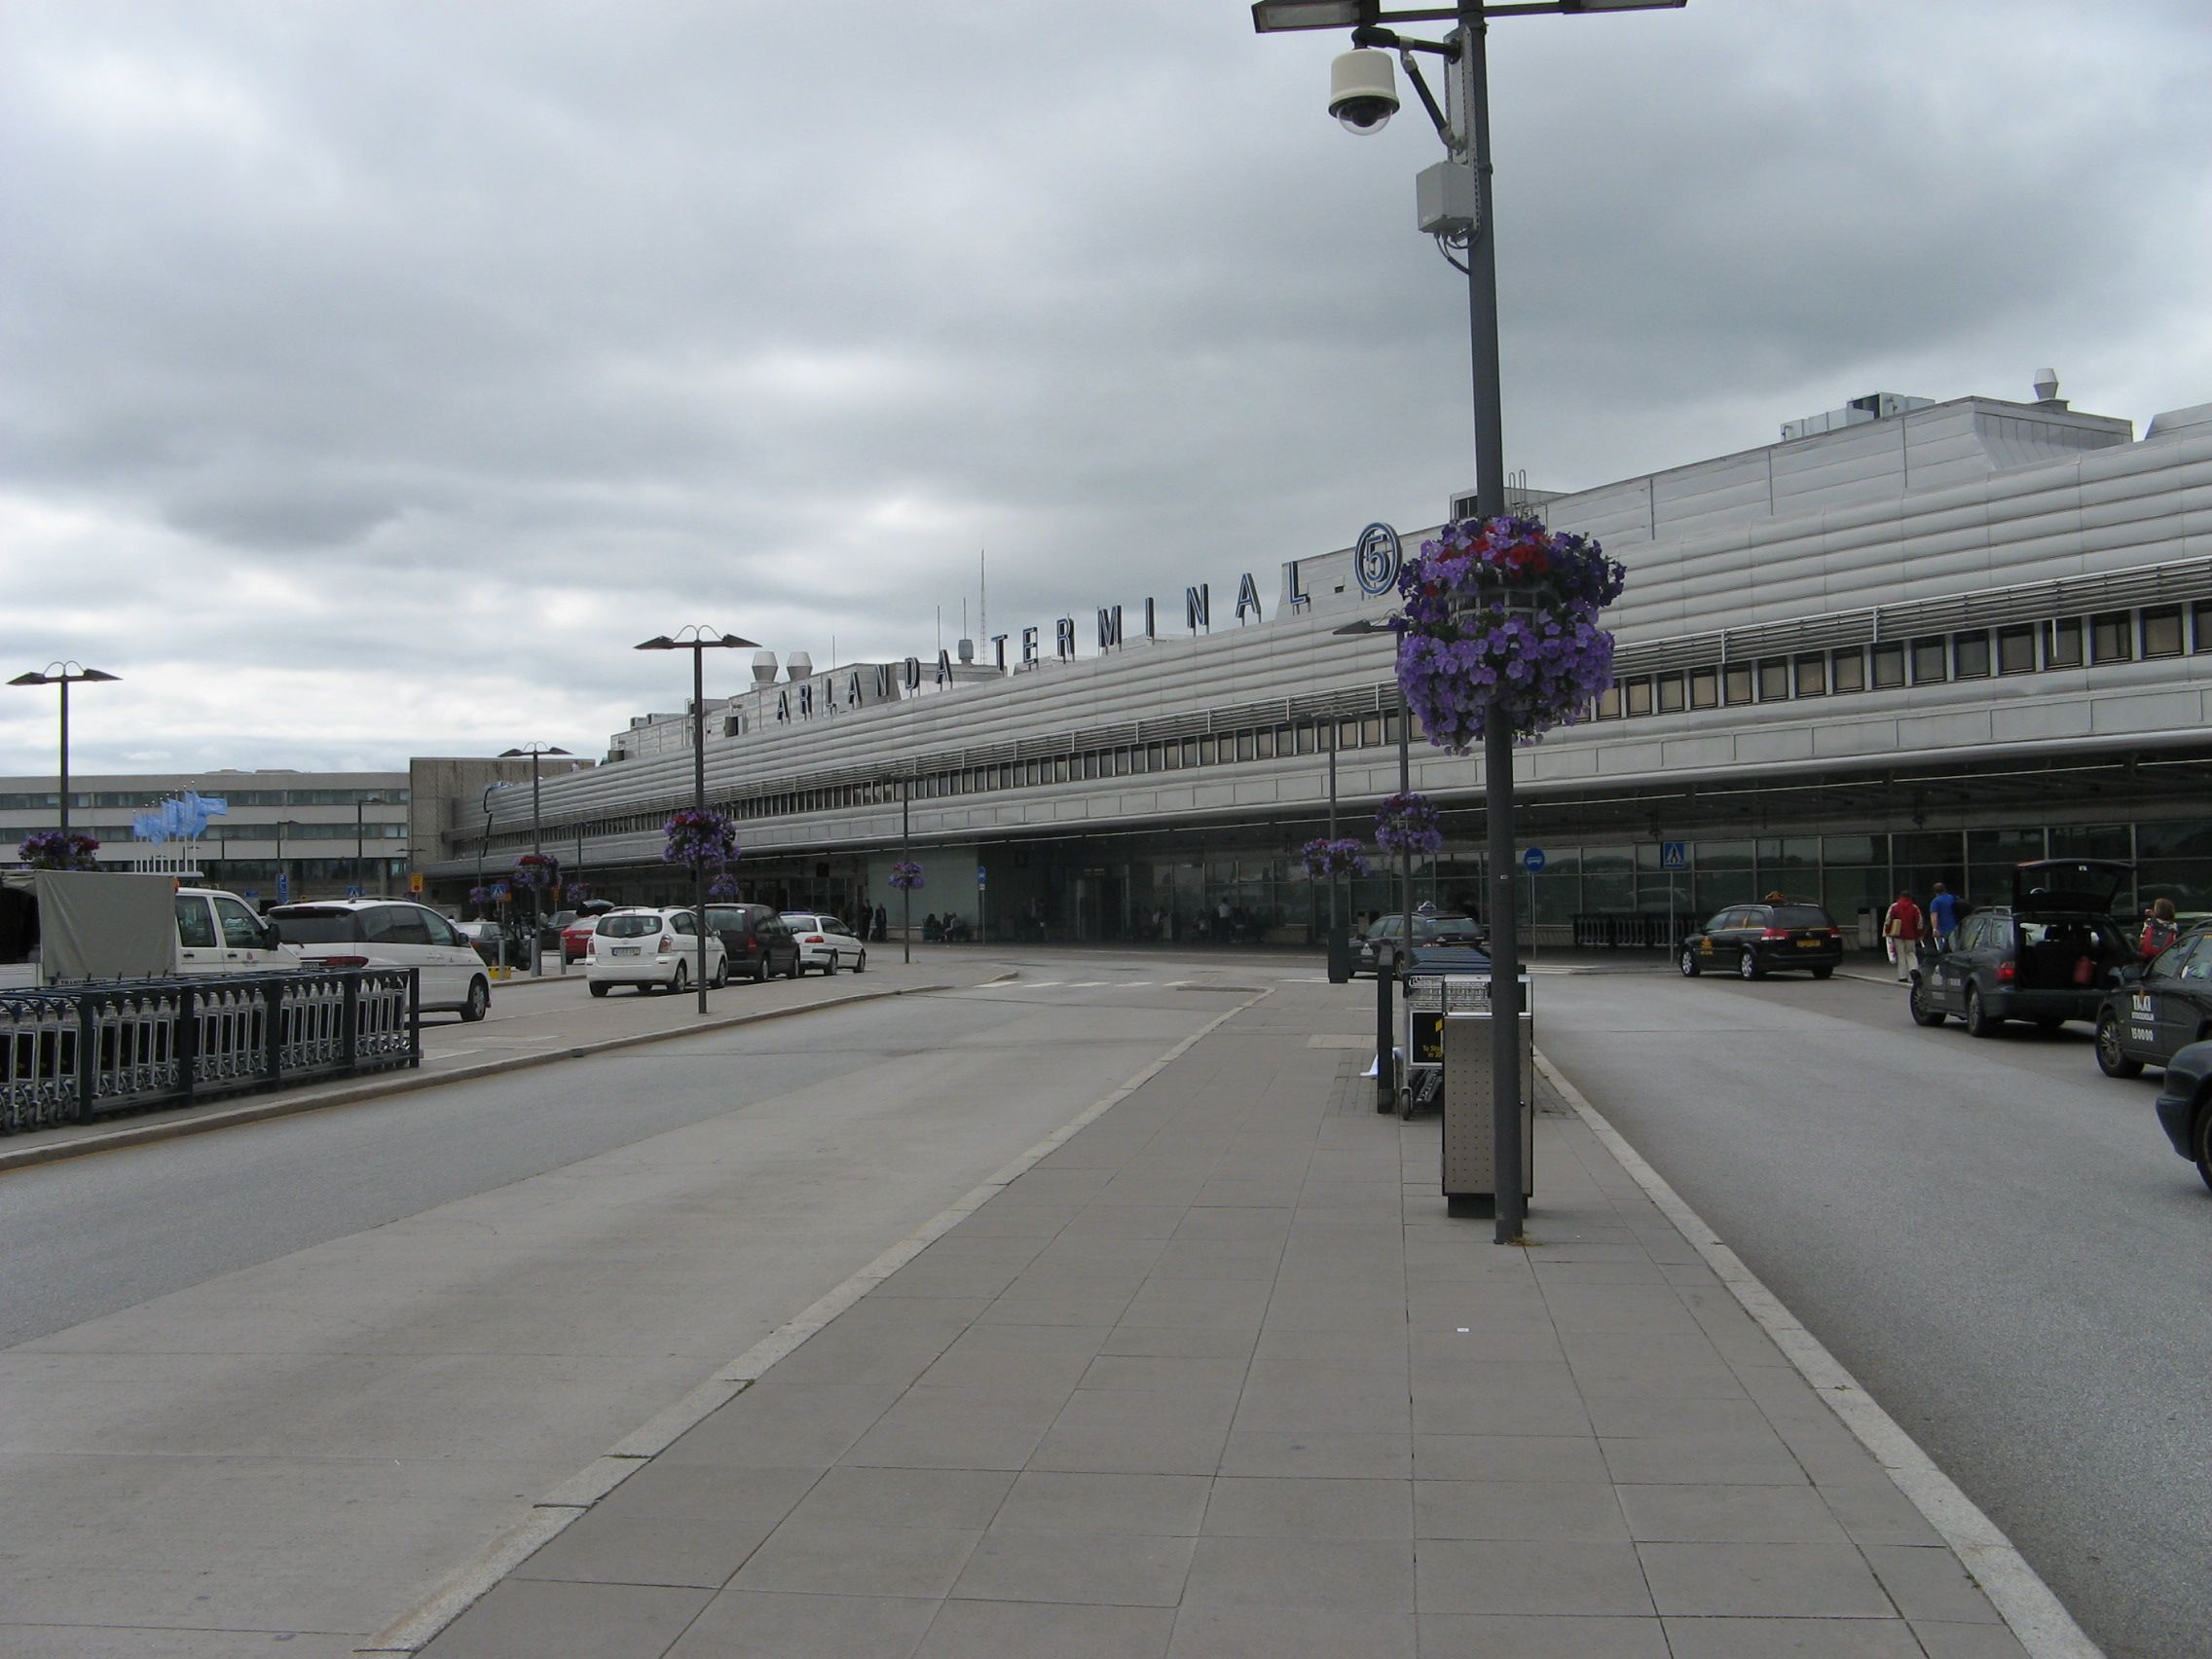 Arlanda Sweden  city pictures gallery : Aéroport d'Arlanda Stockholm0360 Wikipedia, the free ...